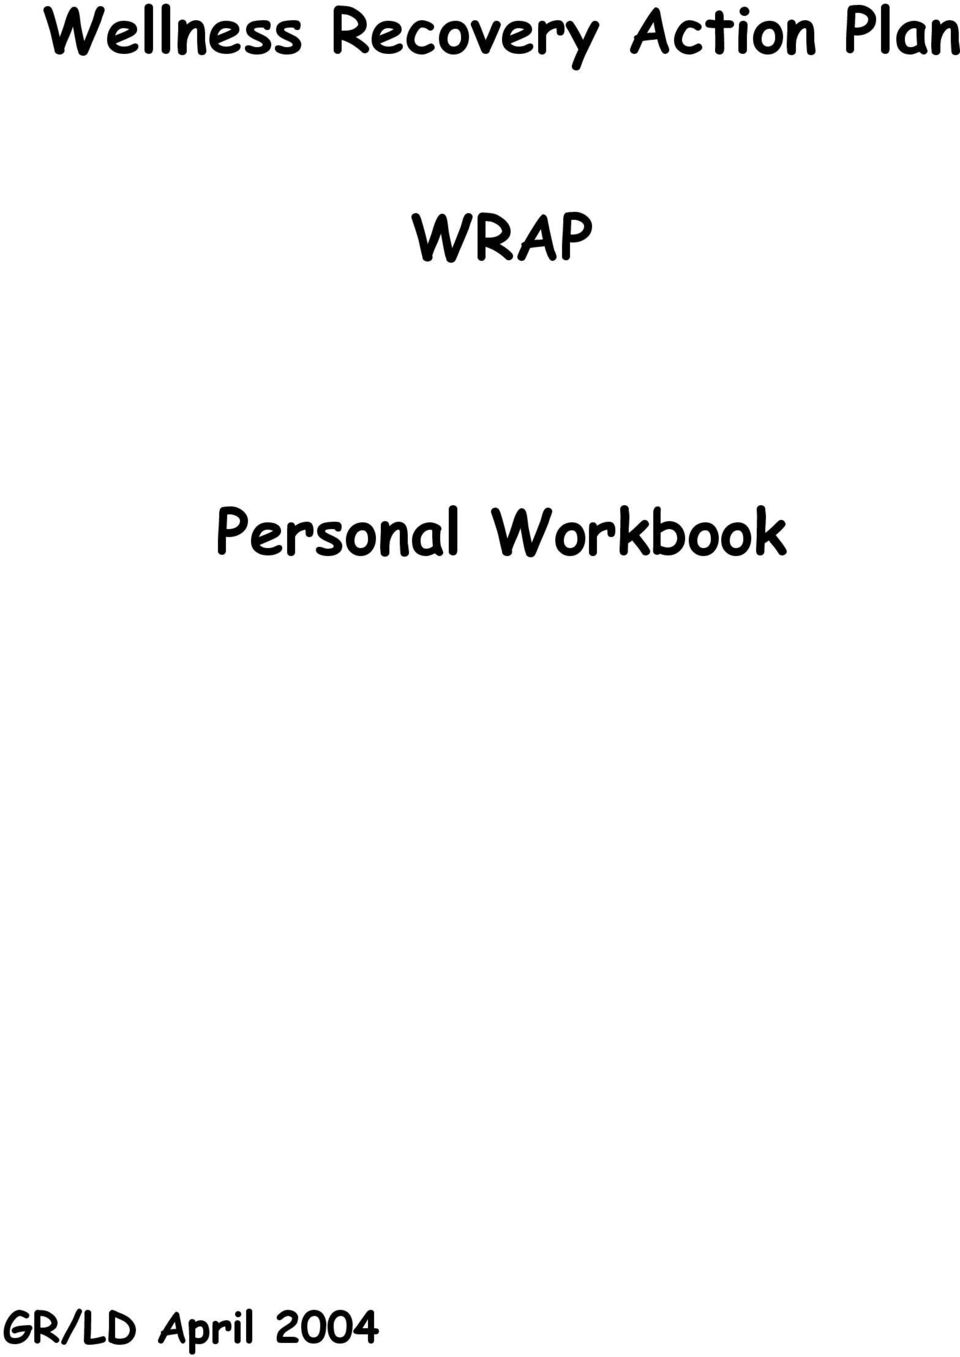 Worksheets Wellness Recovery Action Plan Worksheets wellness recovery action plan wrap personal workbook pdf transcription 1 wrap